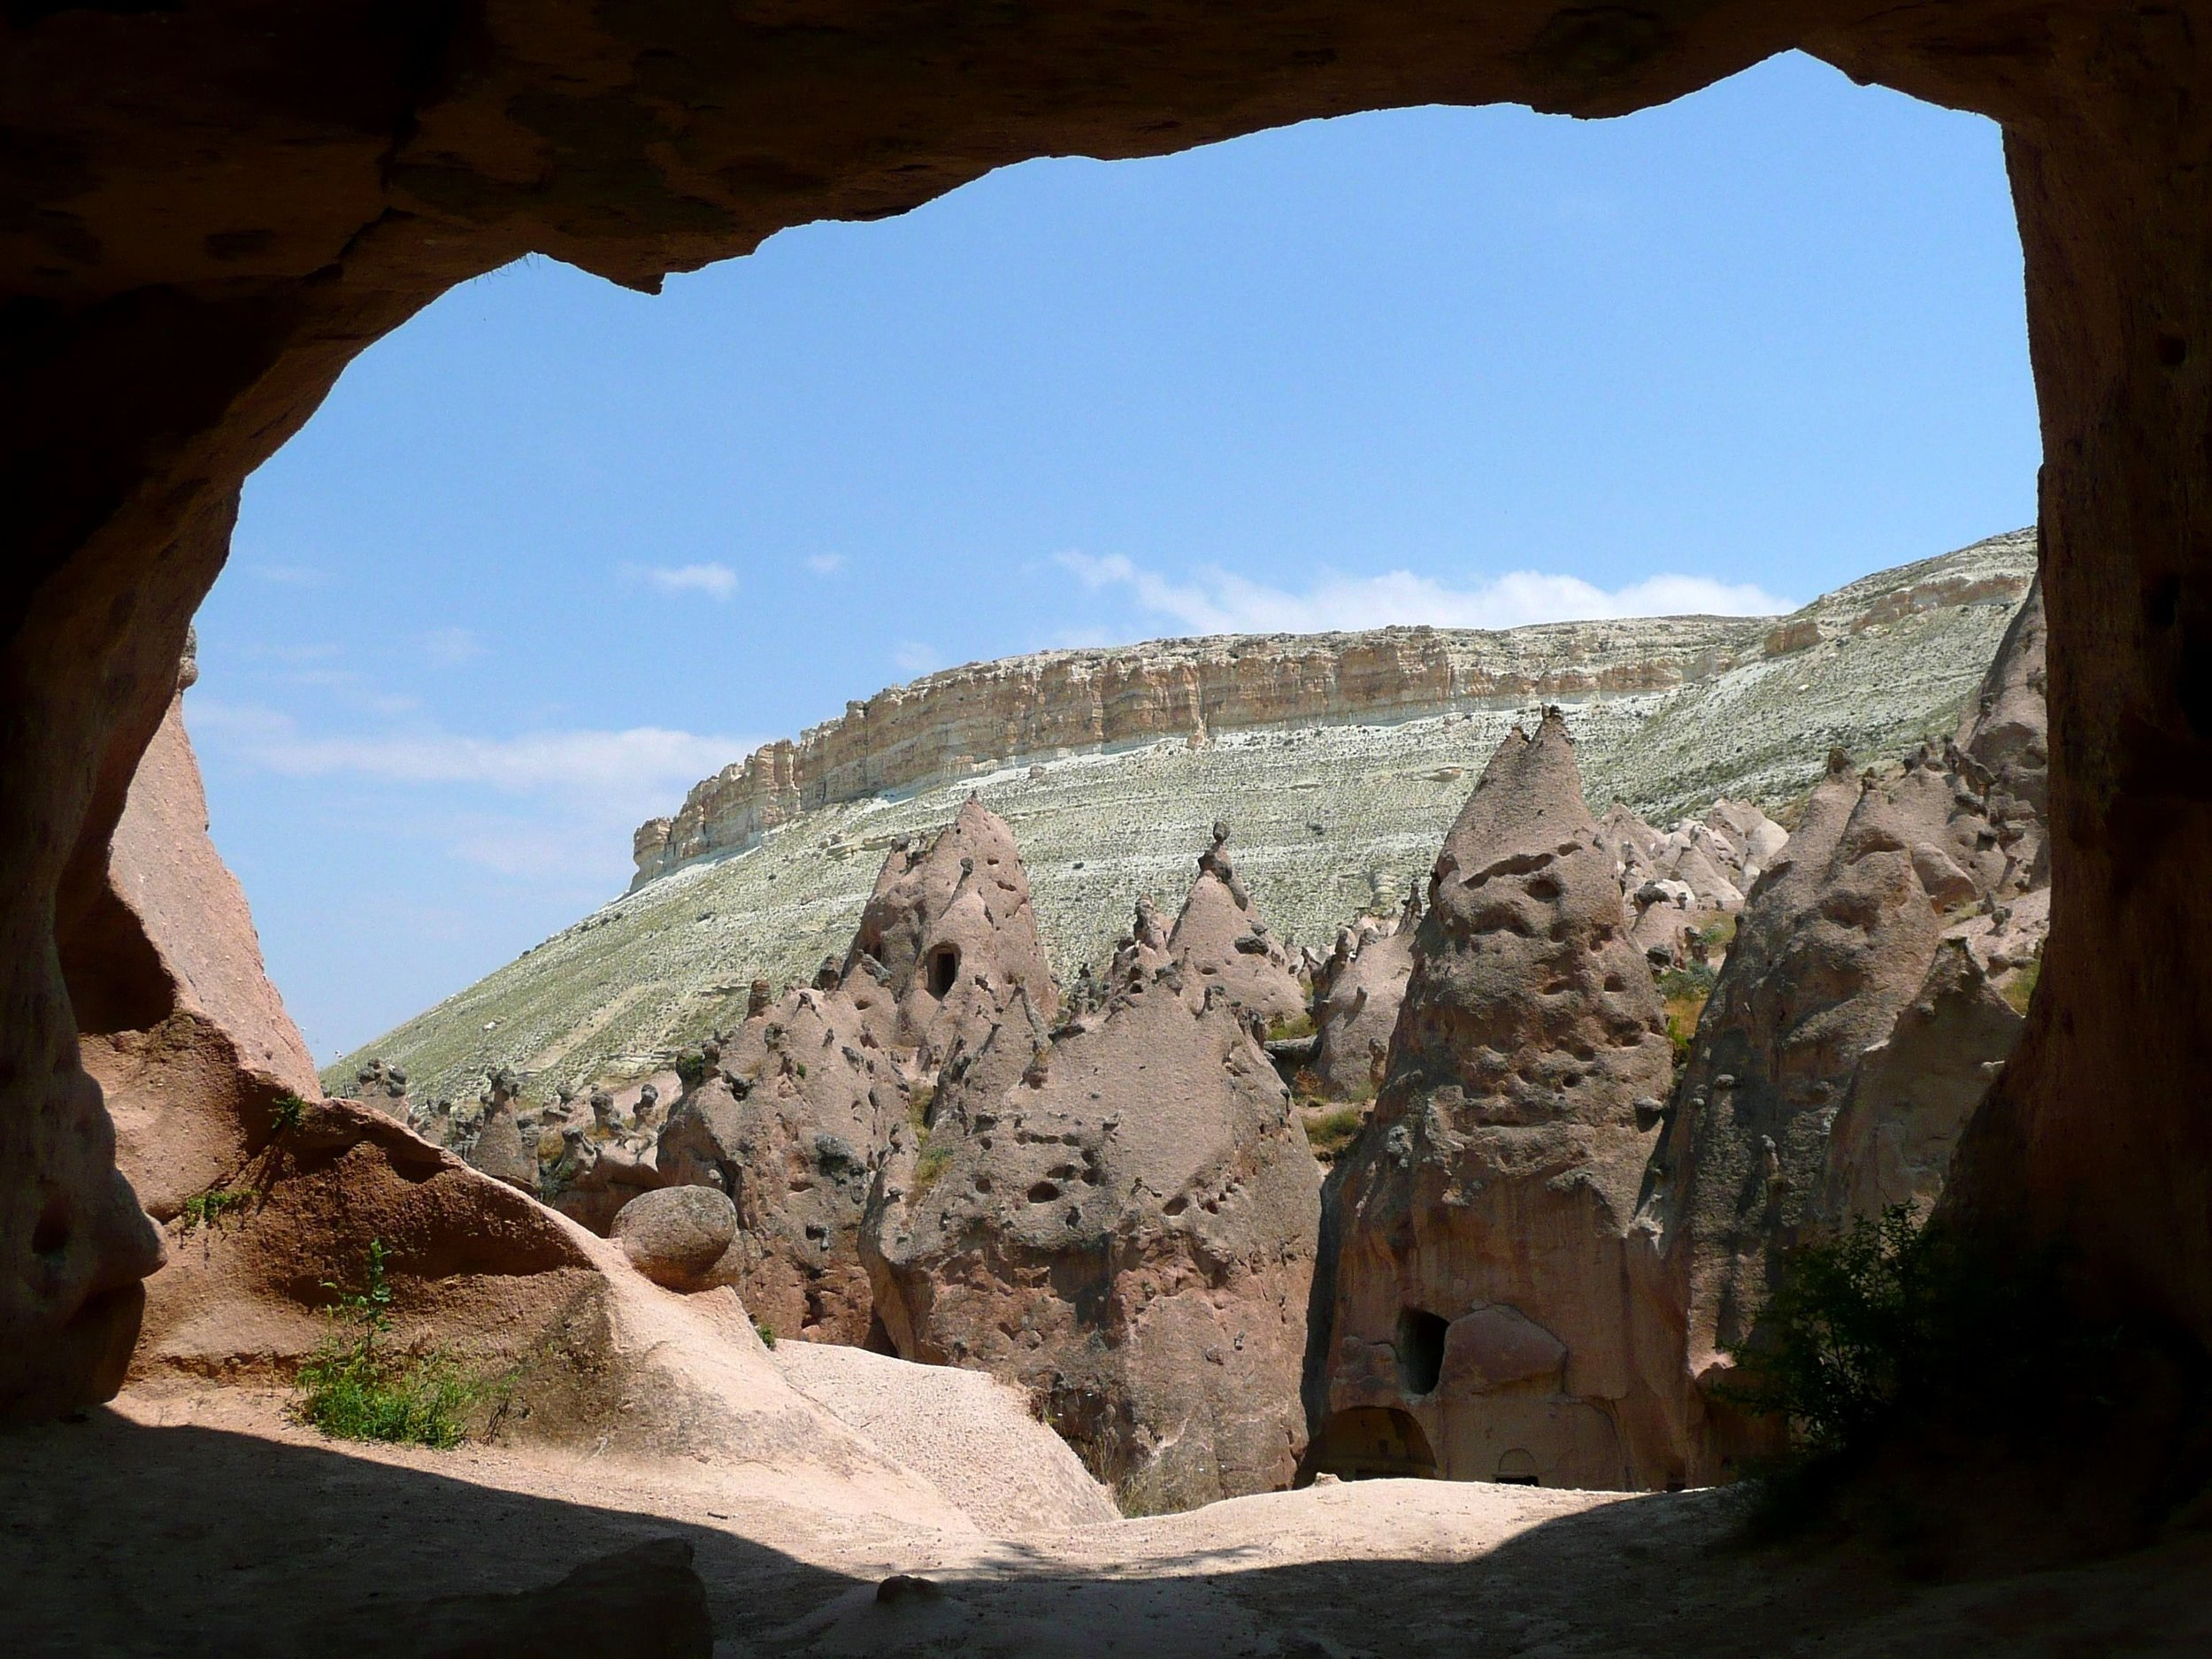 TEN PICTURES THAT WILL MAKE YOU WANT TO TRAVEL TO CAPPADOCIA, TURKEY